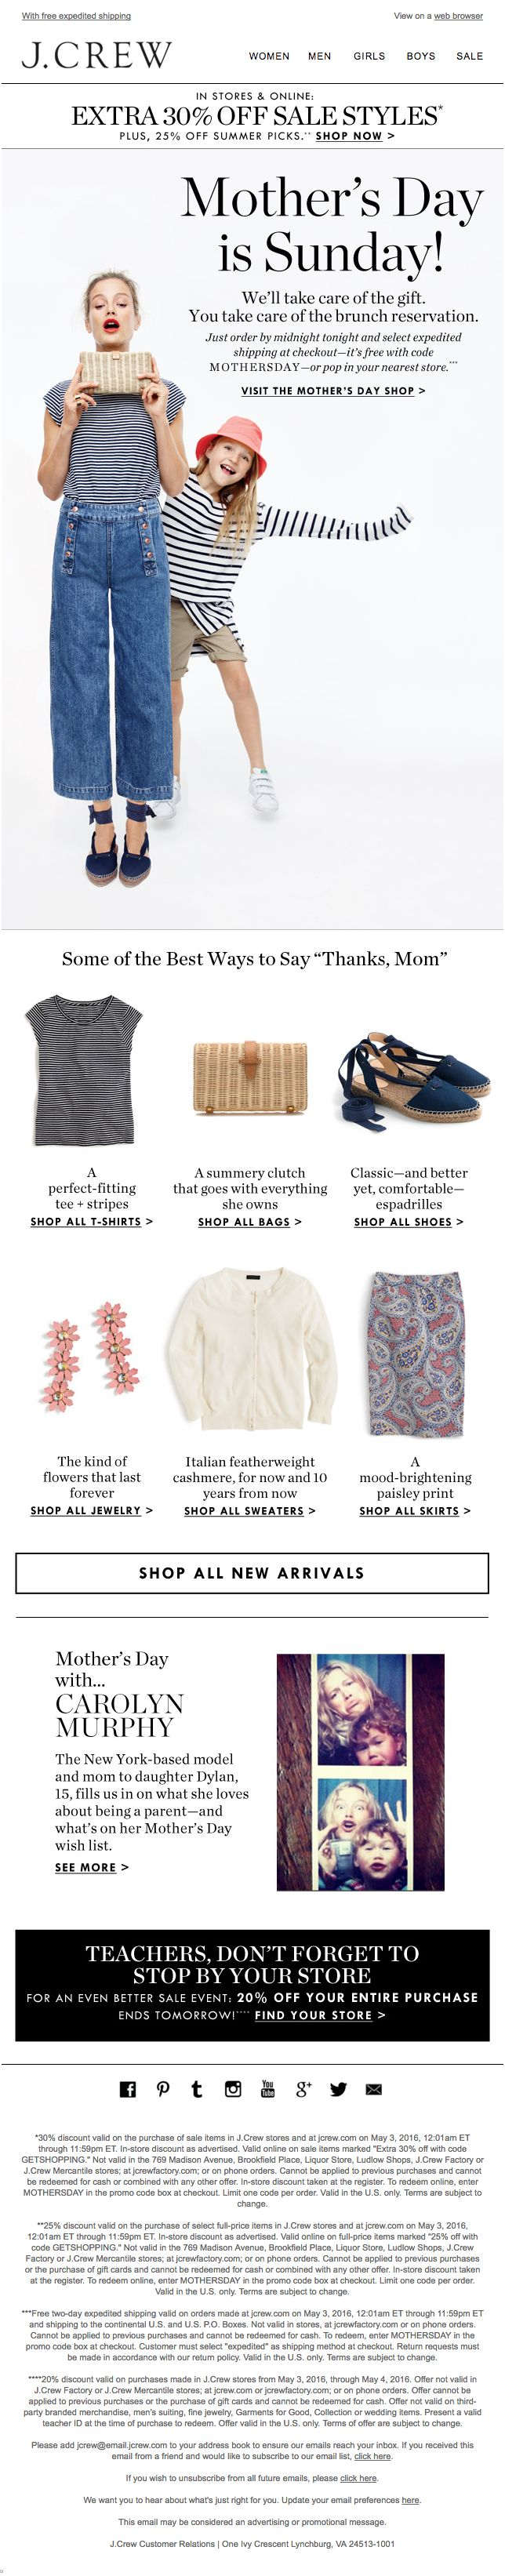 J. Crew Mother's Day email 2016